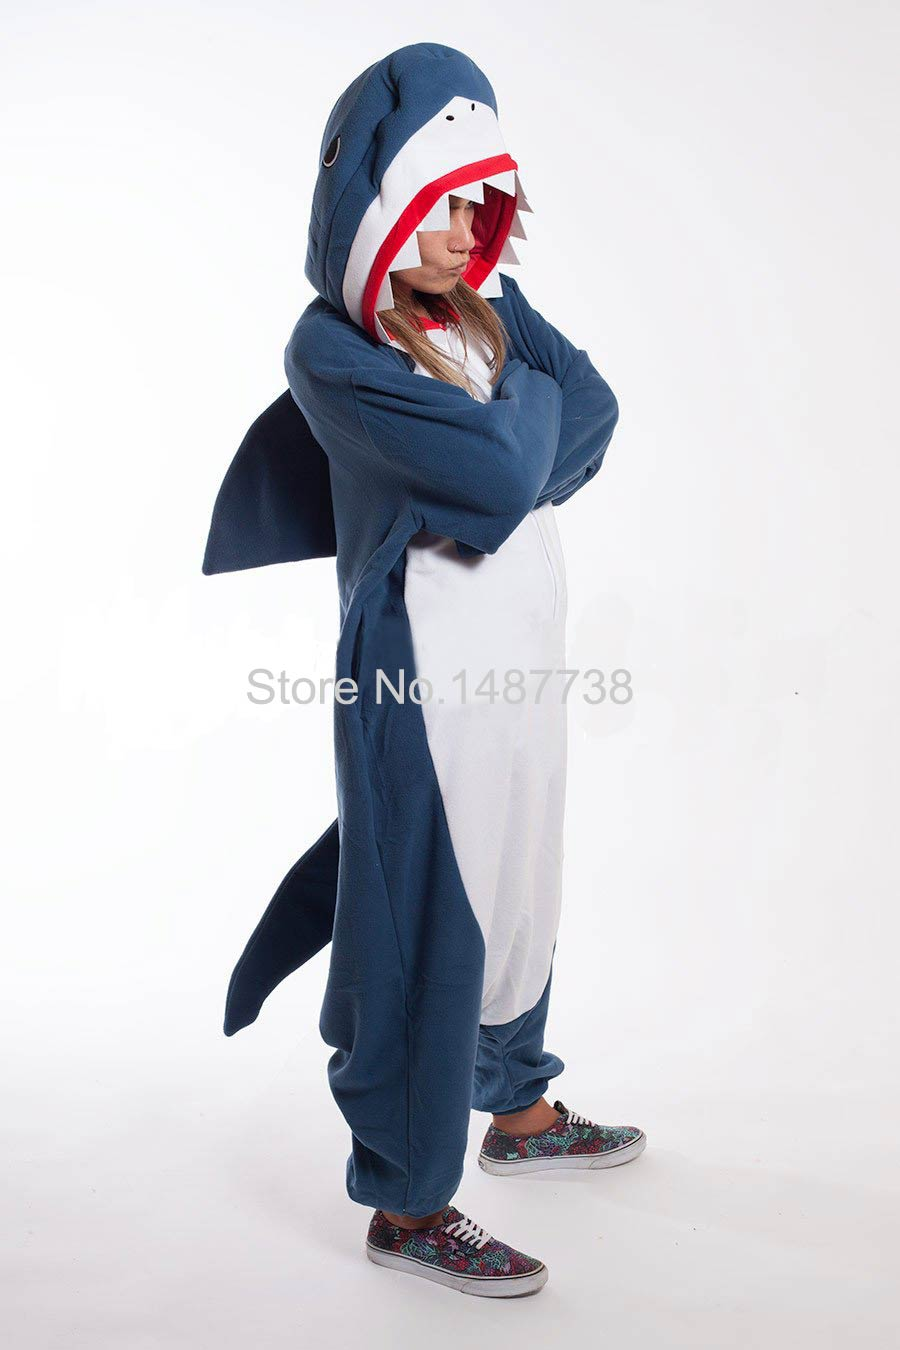 Kigurumi Adult Onesies Unisex Fleece Animal Shark Pajamas Novelty Sleepwear Pyjamas Jumpsuit Nightwear Carnival Cosplay Costumes